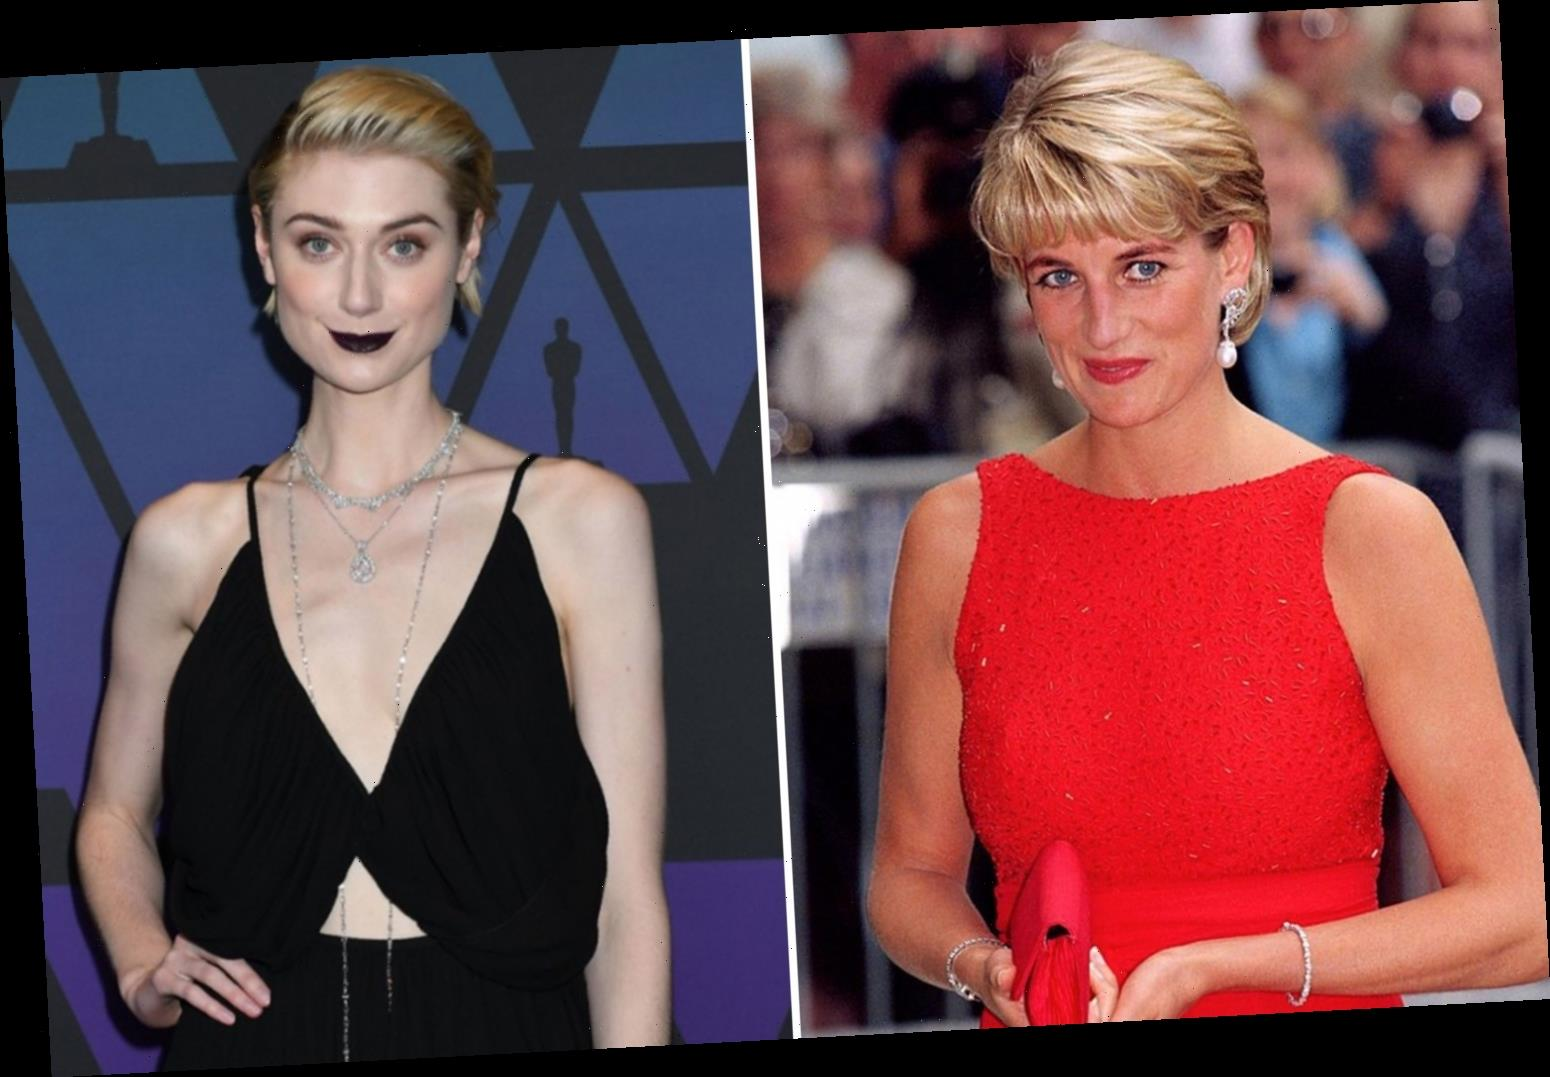 The Night Manager star Elizabeth Debicki to play Princess Diana in final two series of The Crown